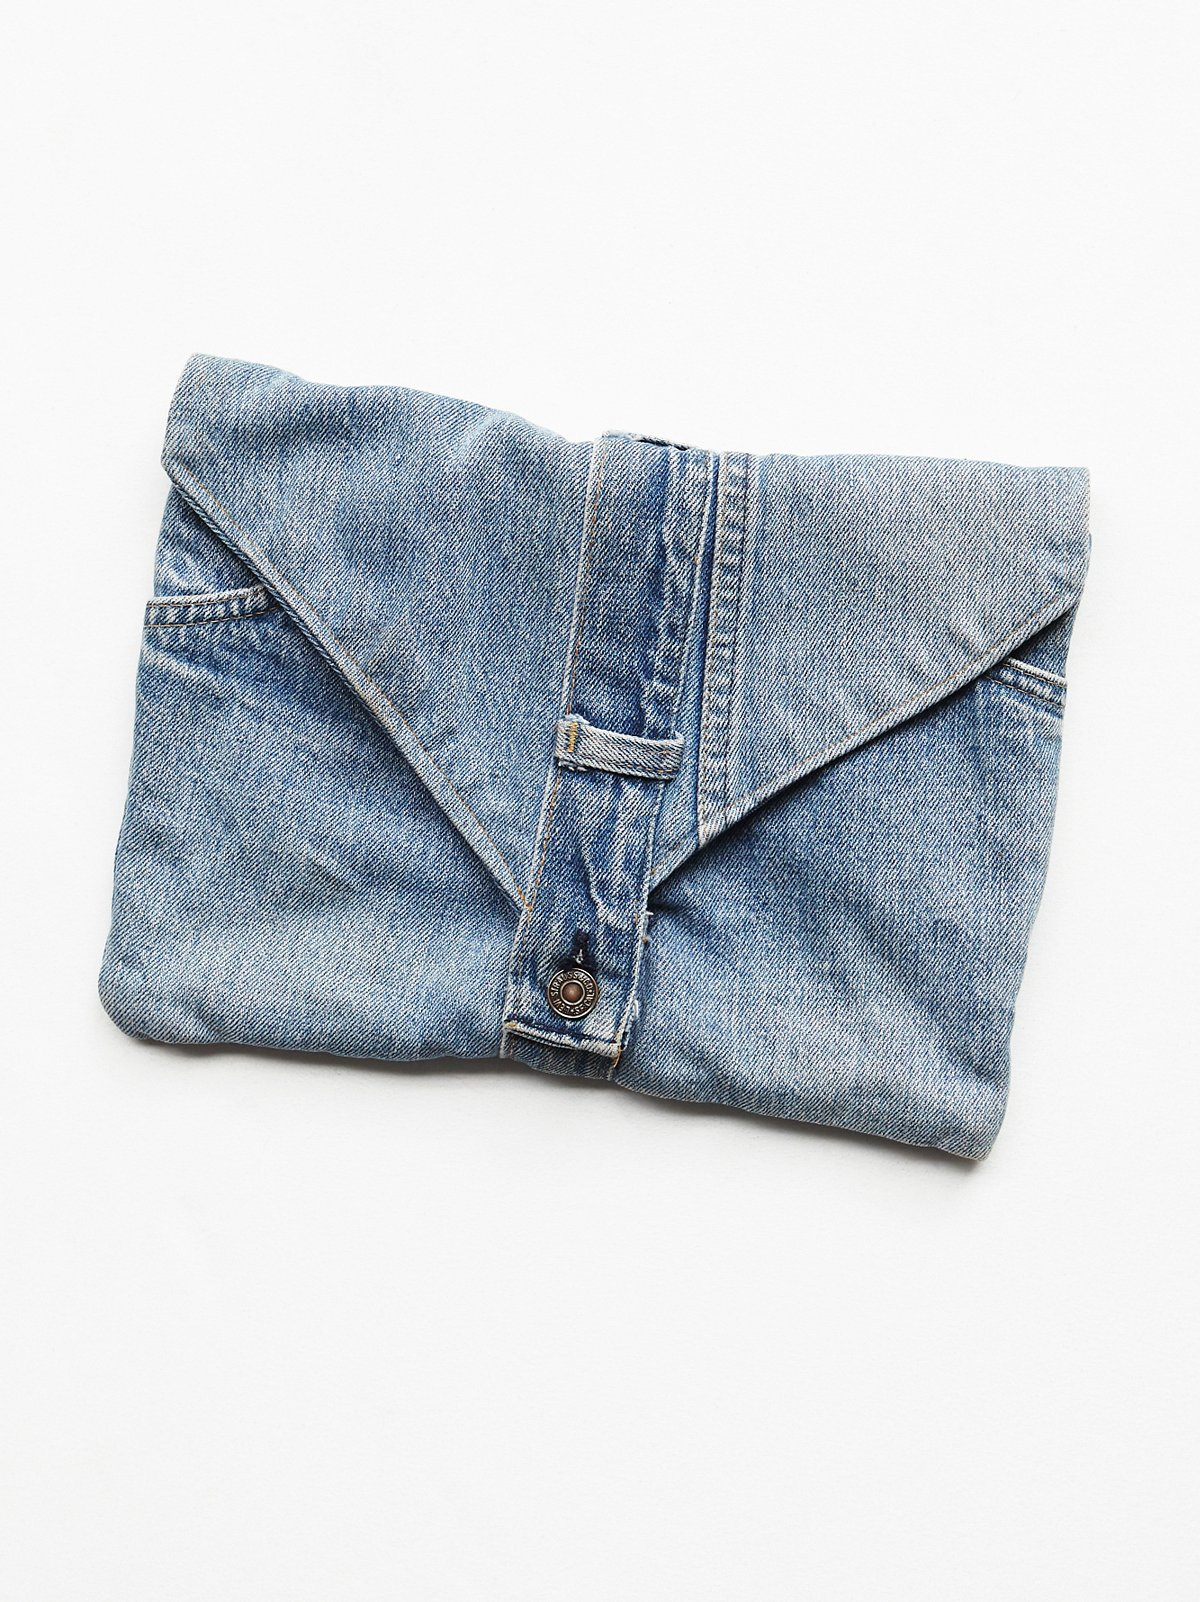 Vintage Handmade Denim Clutch